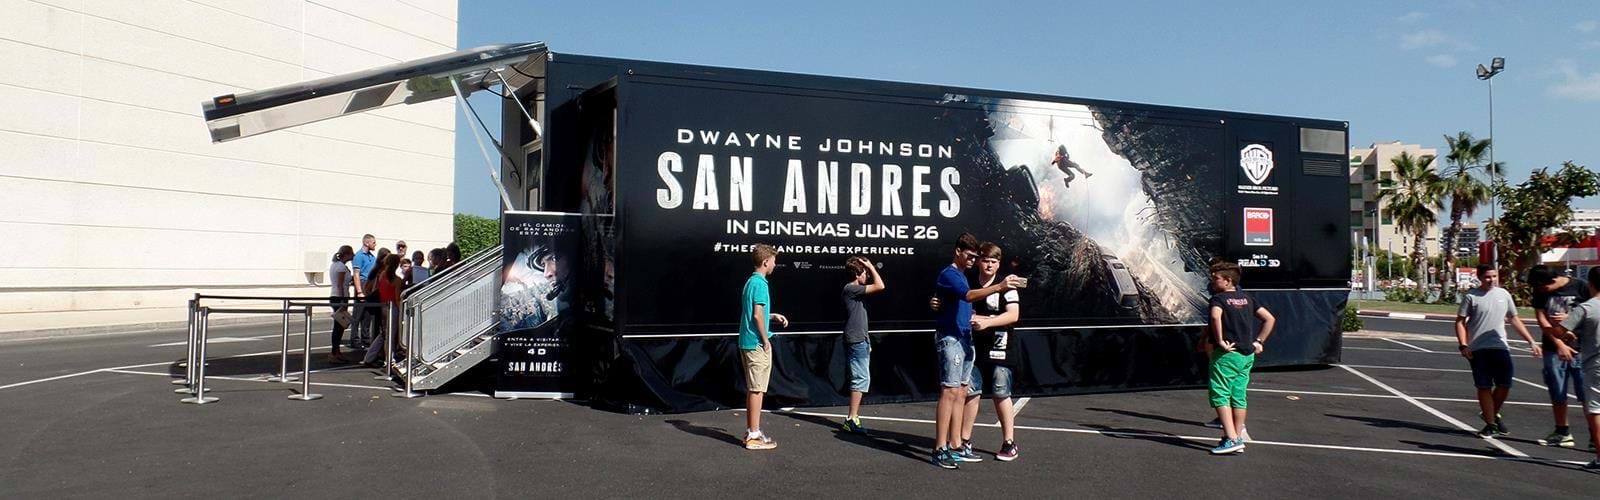 Warner Bros San Andreas Roadshow Truck B5